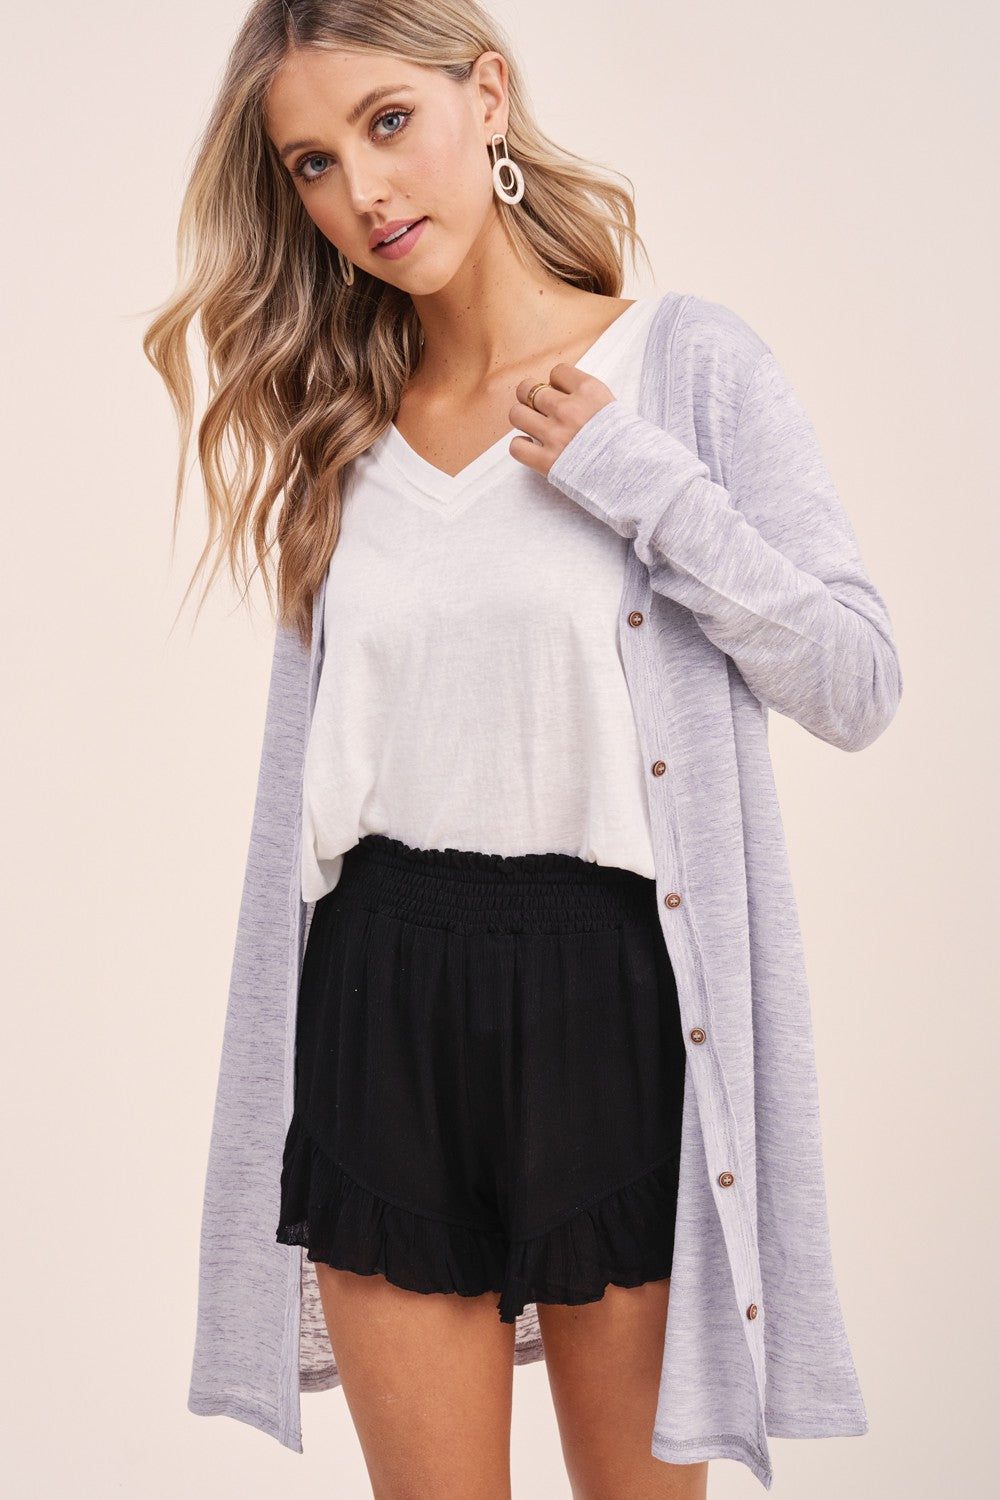 Belize Cardigan